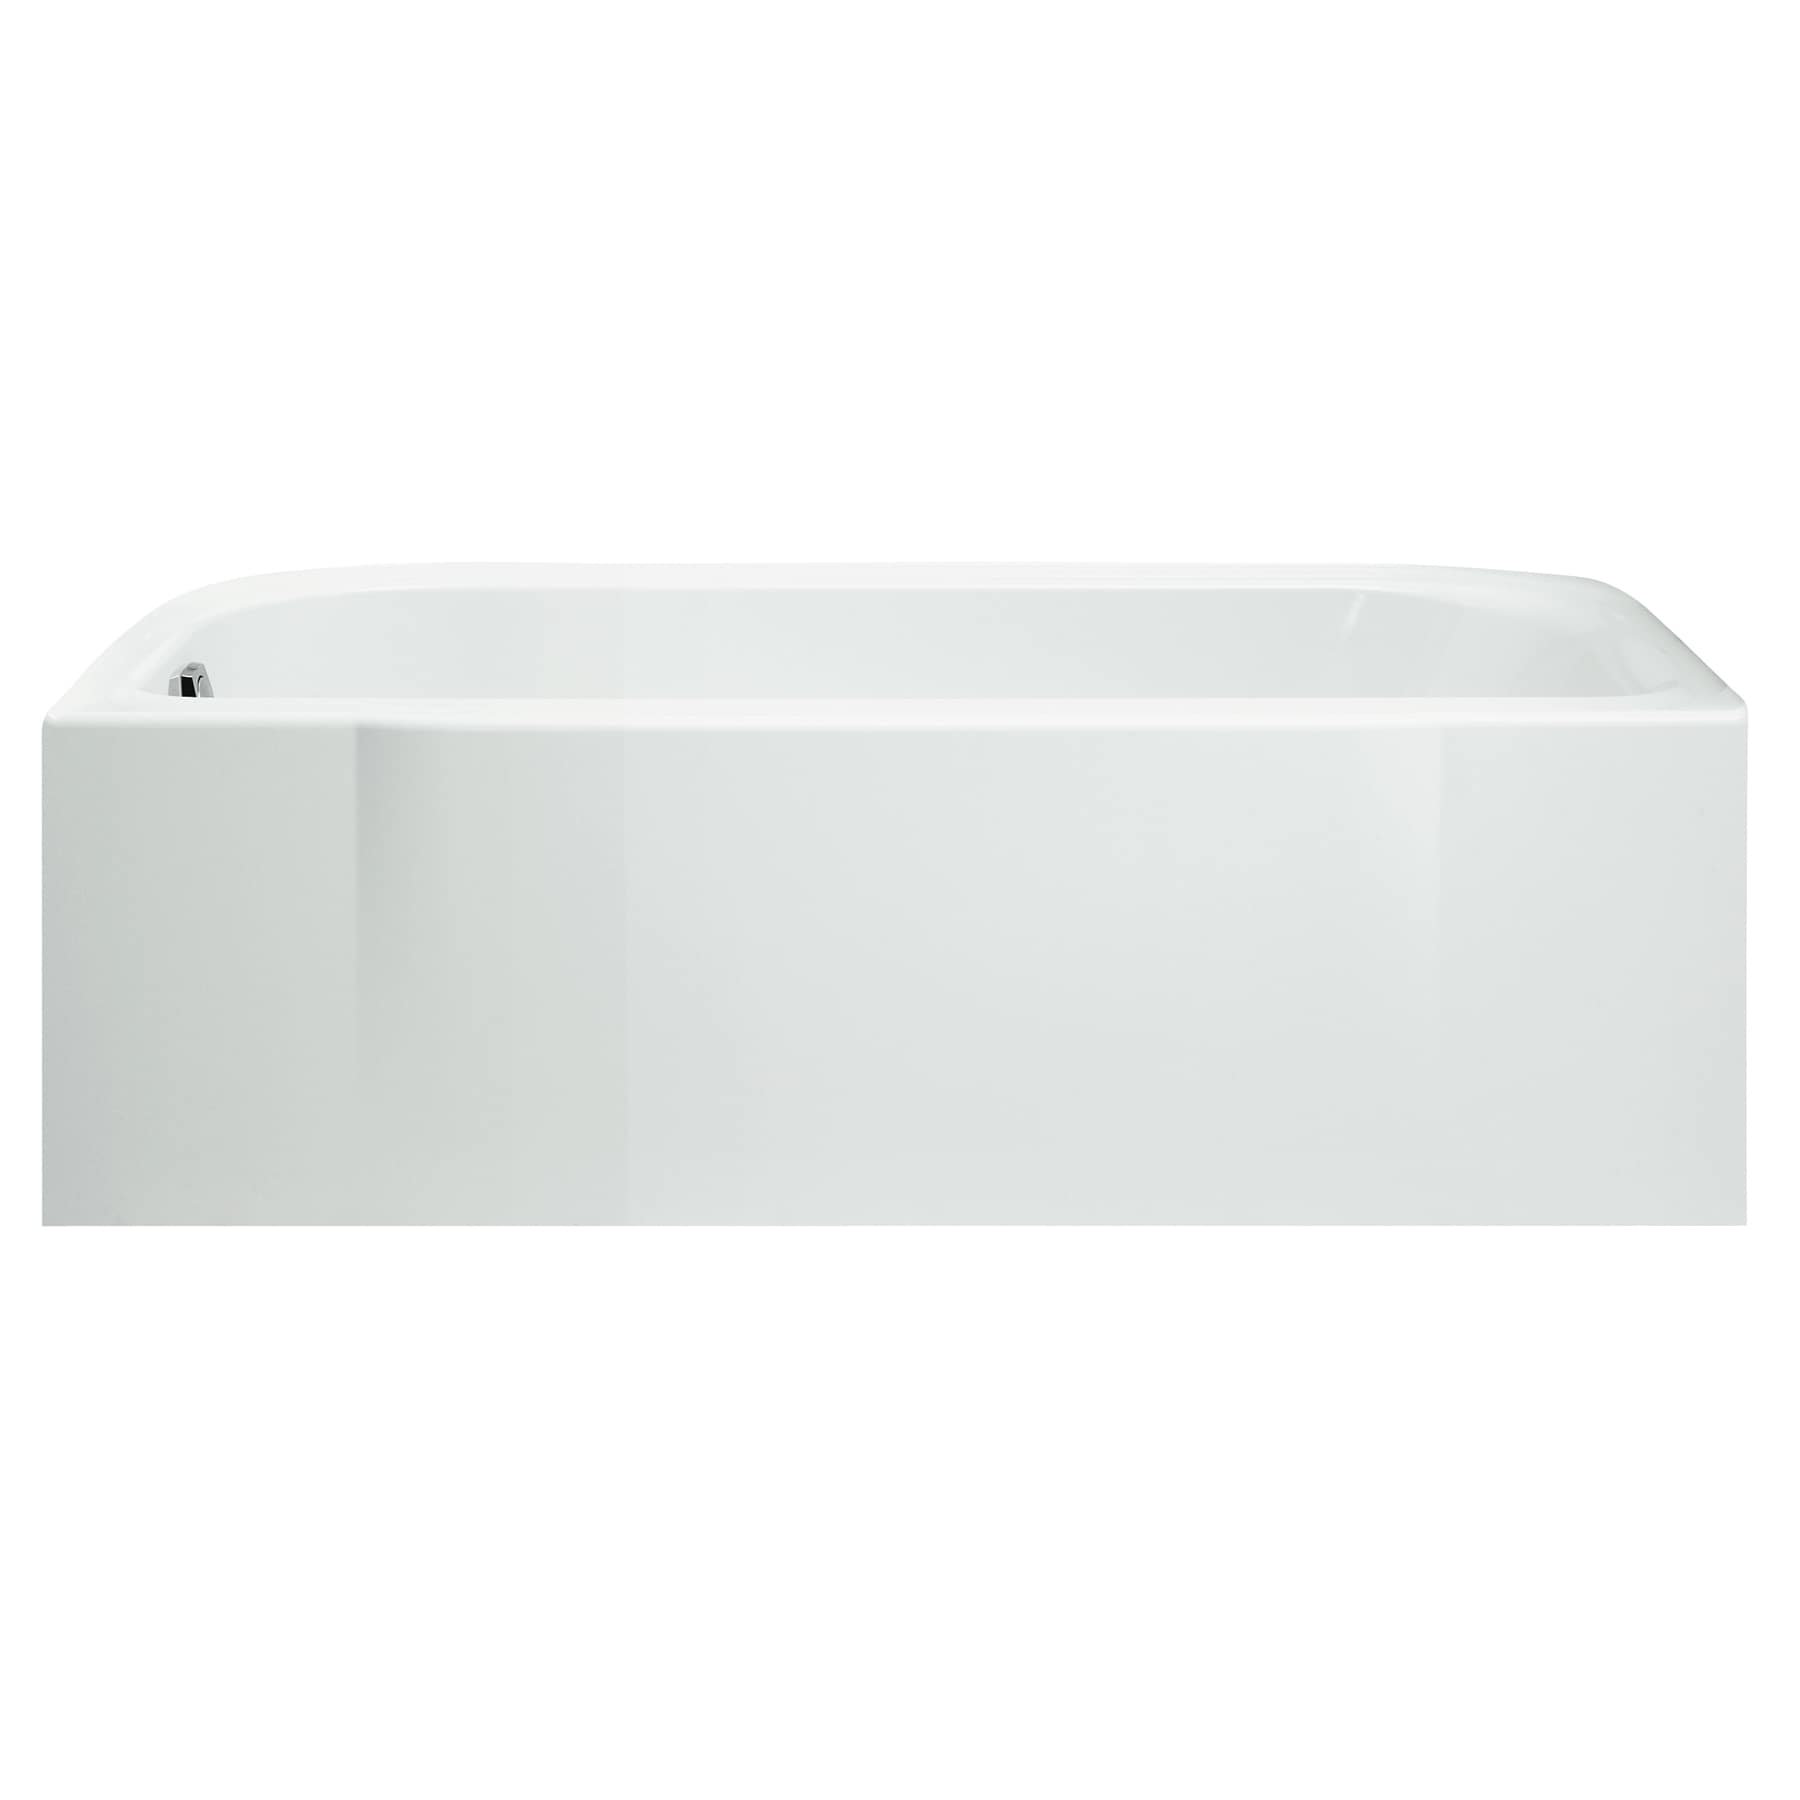 Sterling Accord 5-foot Left Drain Biscuit Soaking Tub (Le...